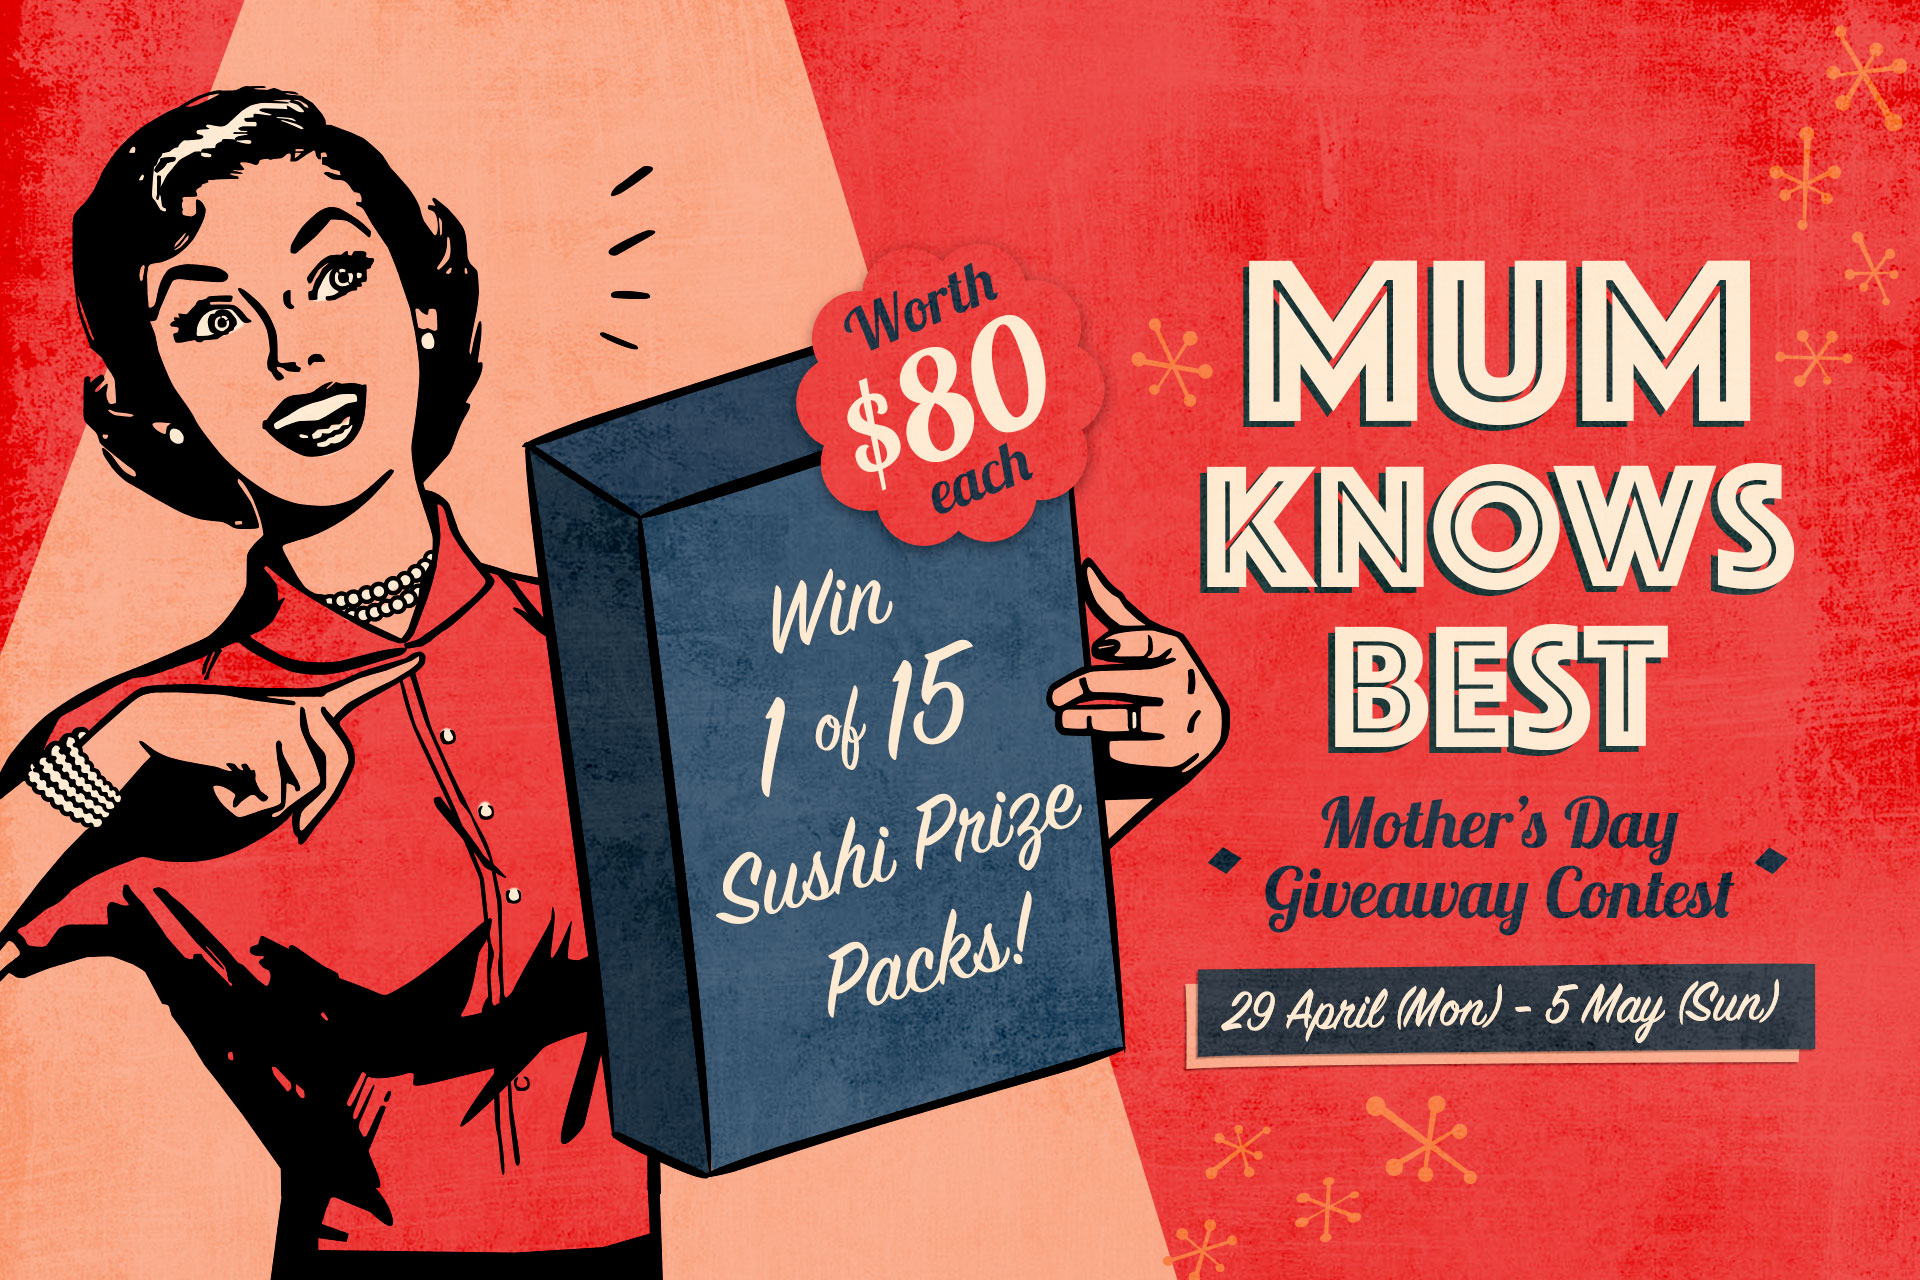 """Mum Knows Best"""" Giveaway Contest 